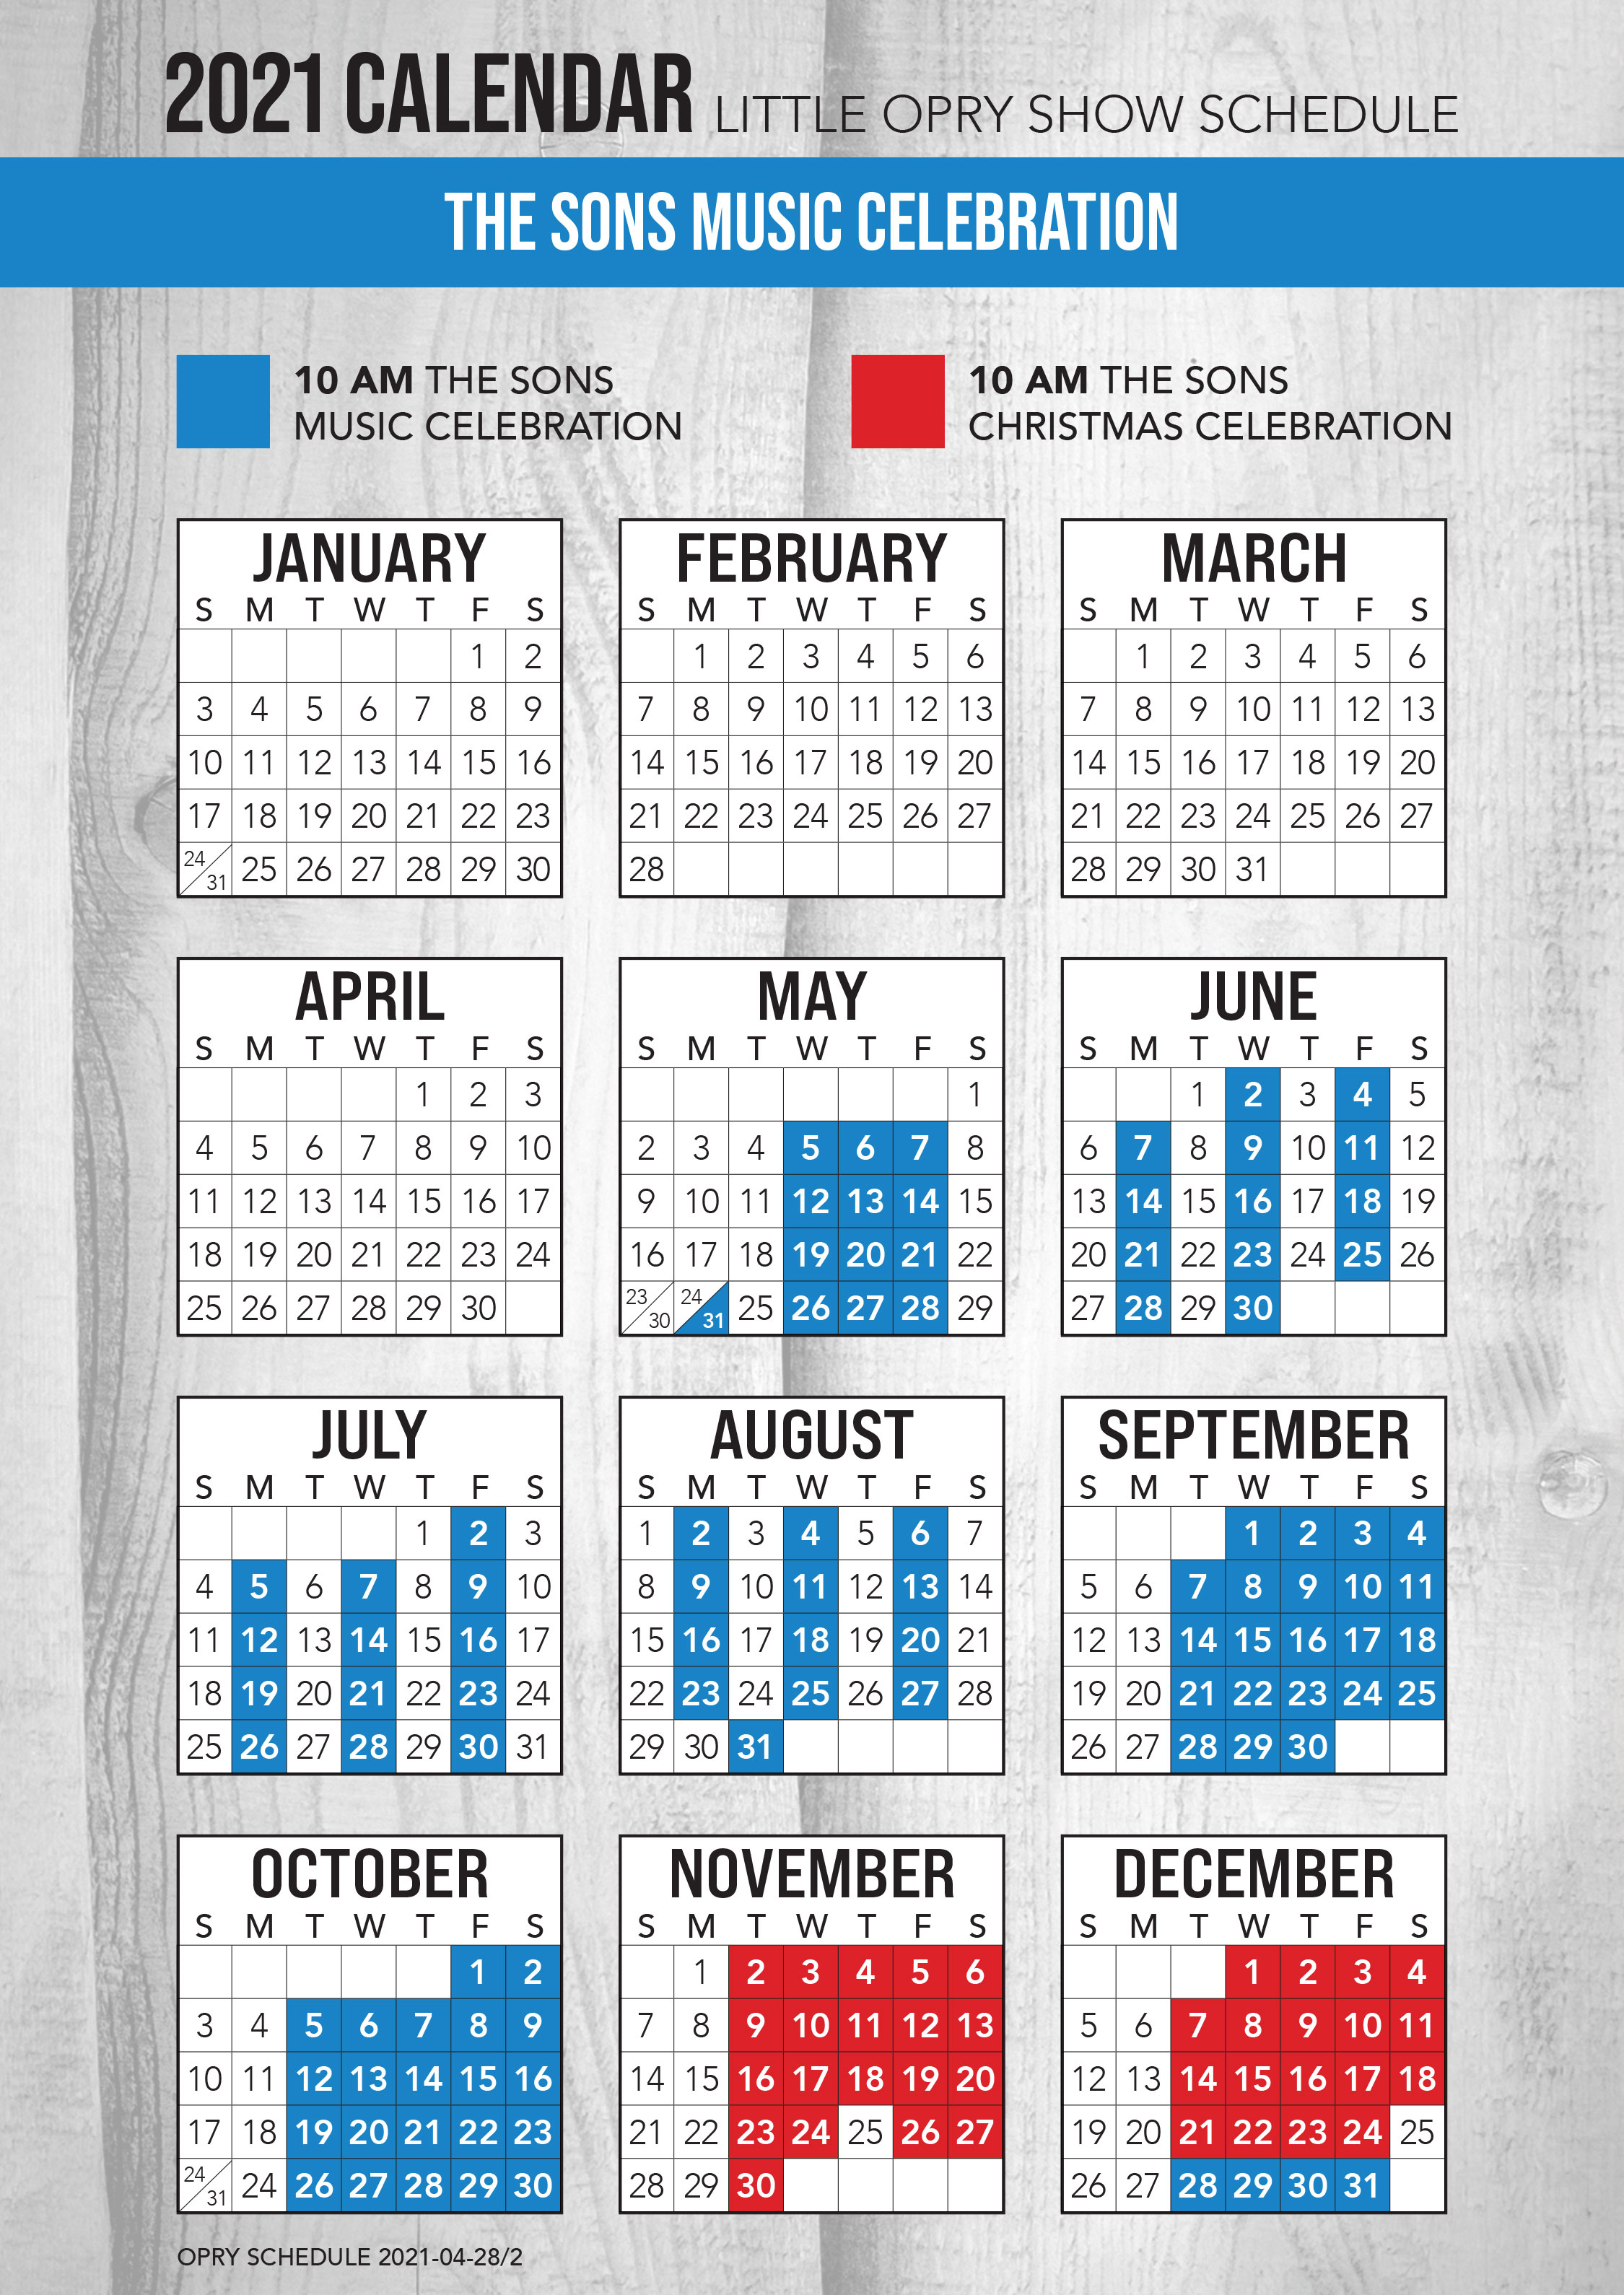 The Sons Music Celebration 2021 Schedule